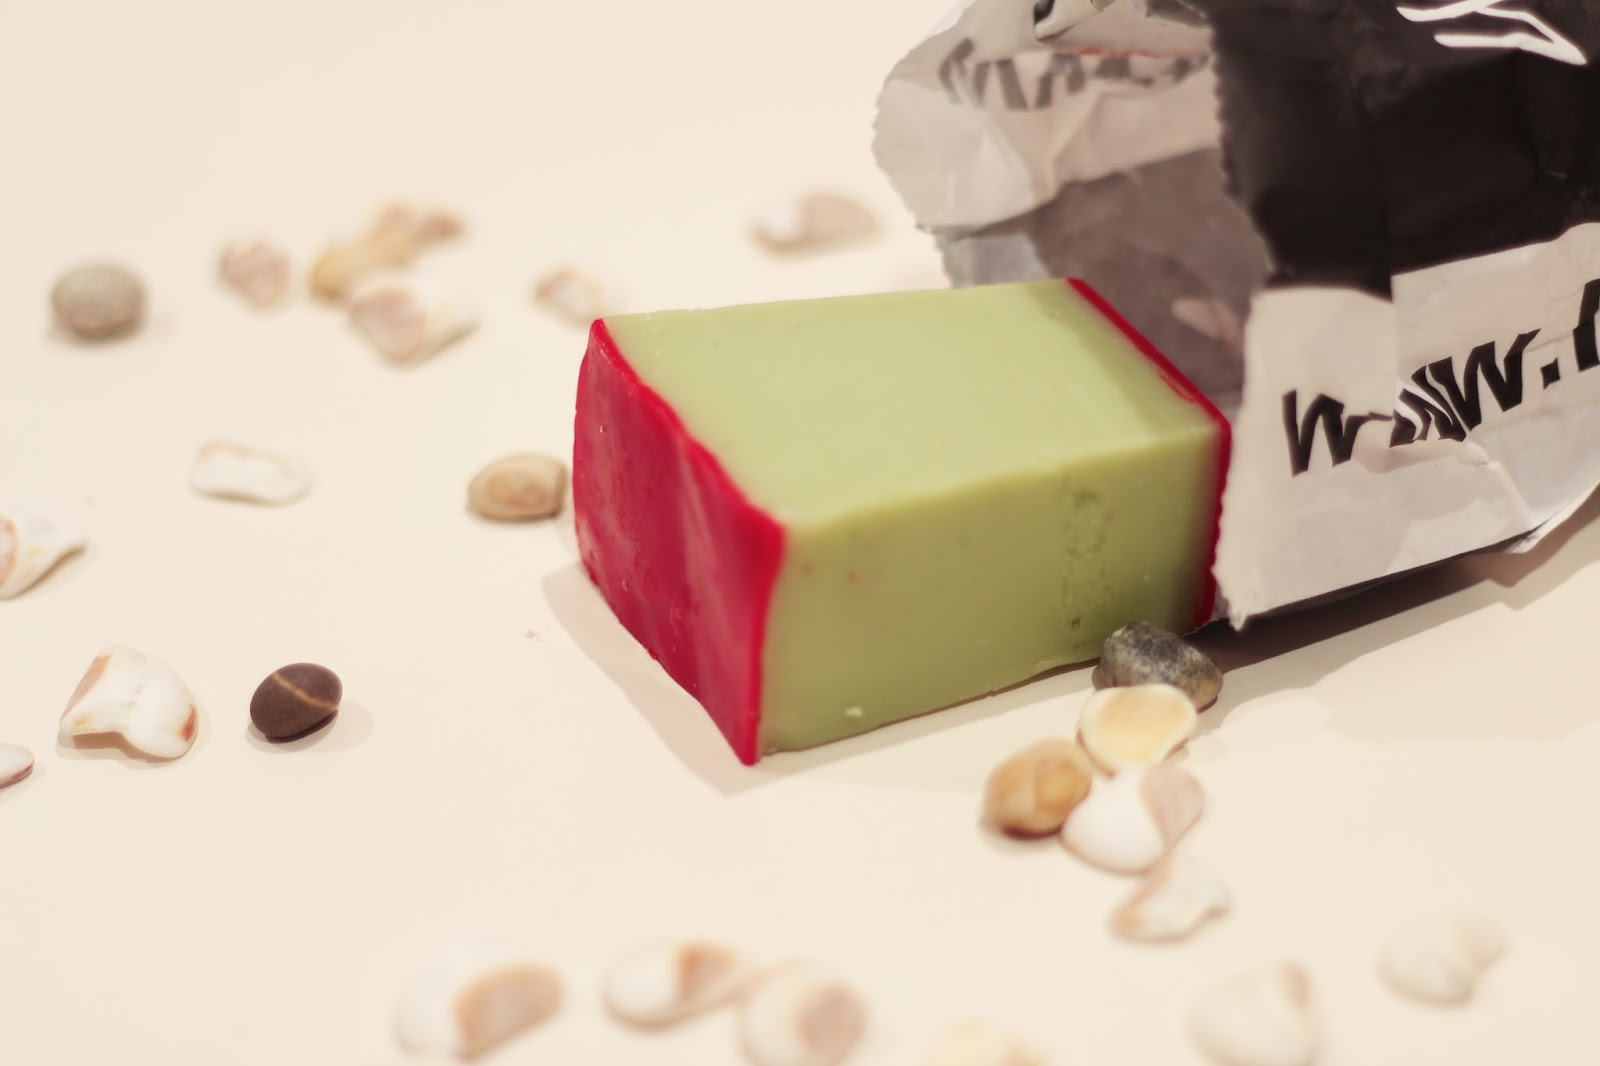 wanting to try the avacado co-wash lush brought out but are a bit unsure? read my thoughts here...